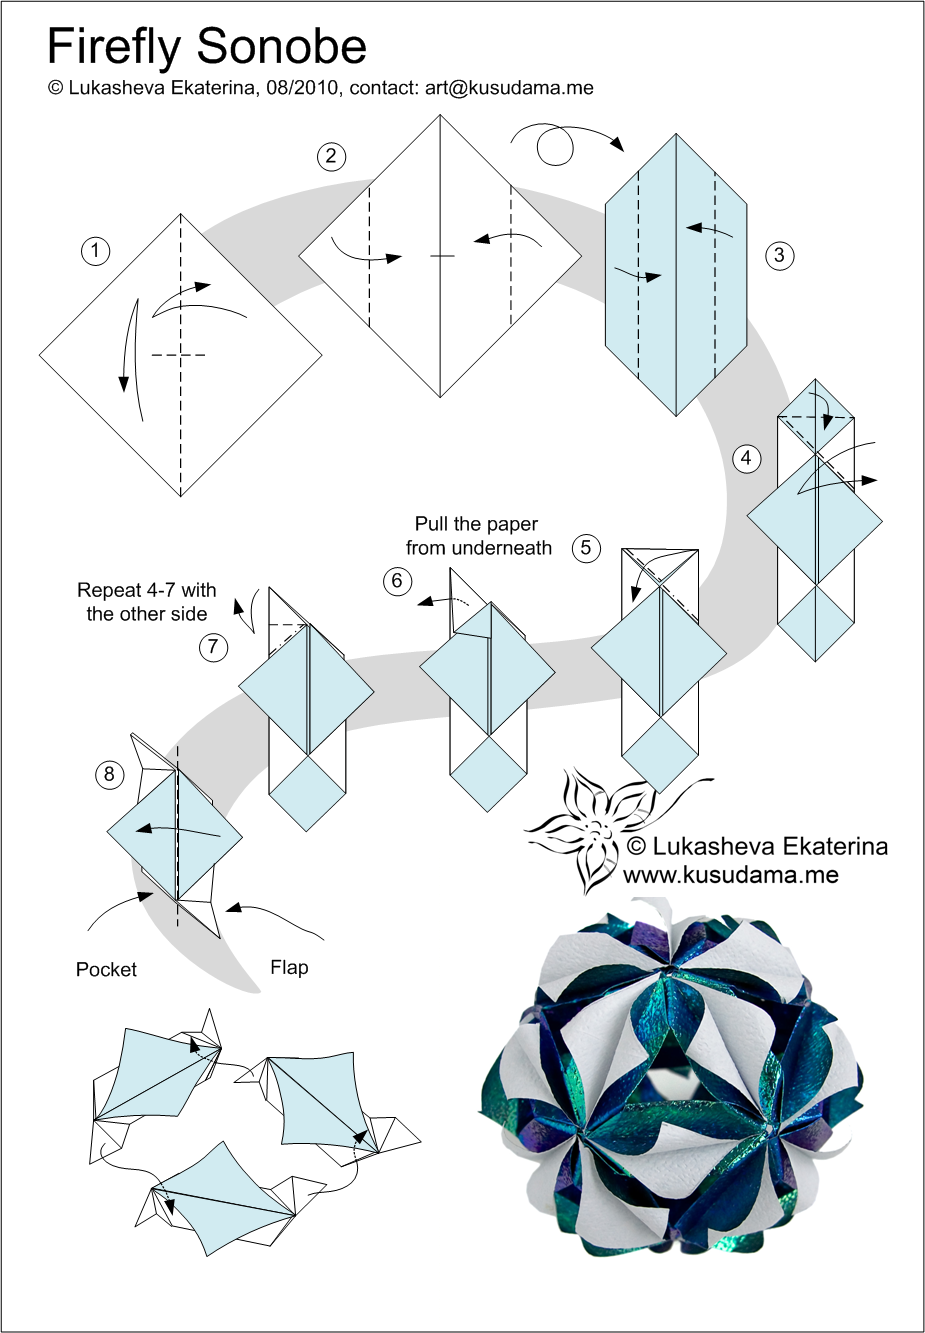 kusudama me! - modular origami dragonfly unit easy diagram of the nitrogen cycle easy diagram of firefly #4